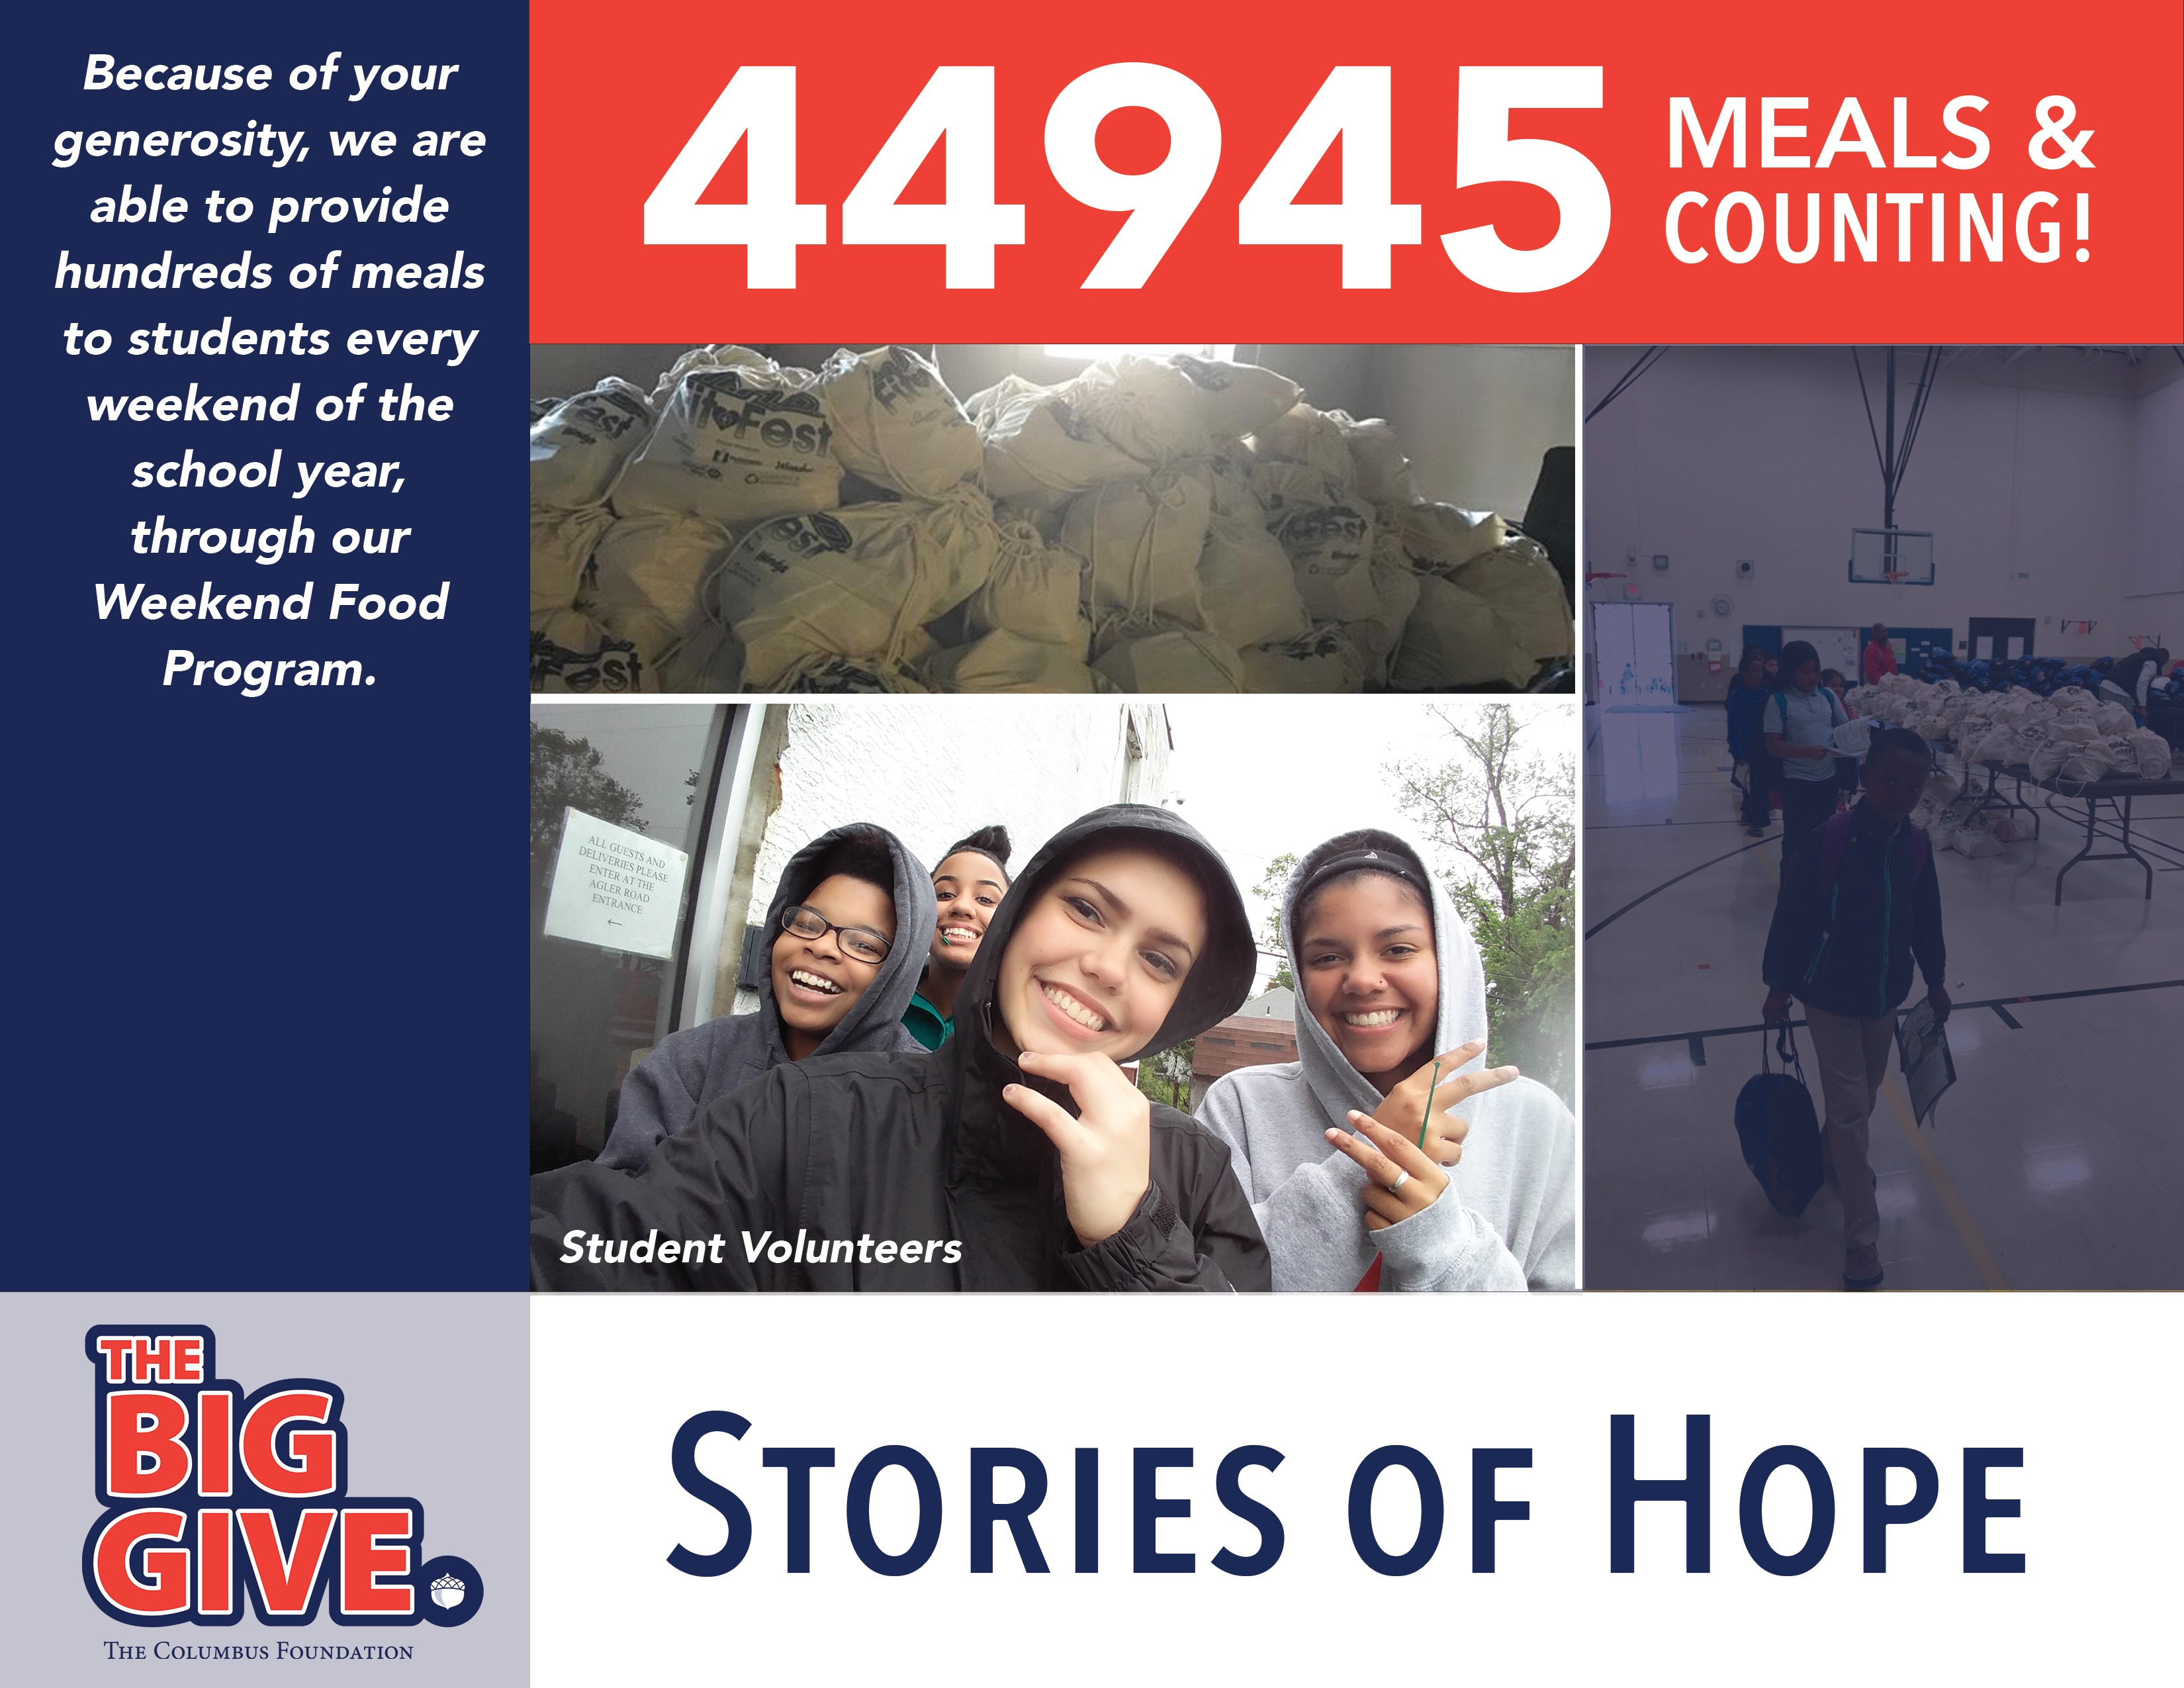 Stories of Hope - Weekend Food Program